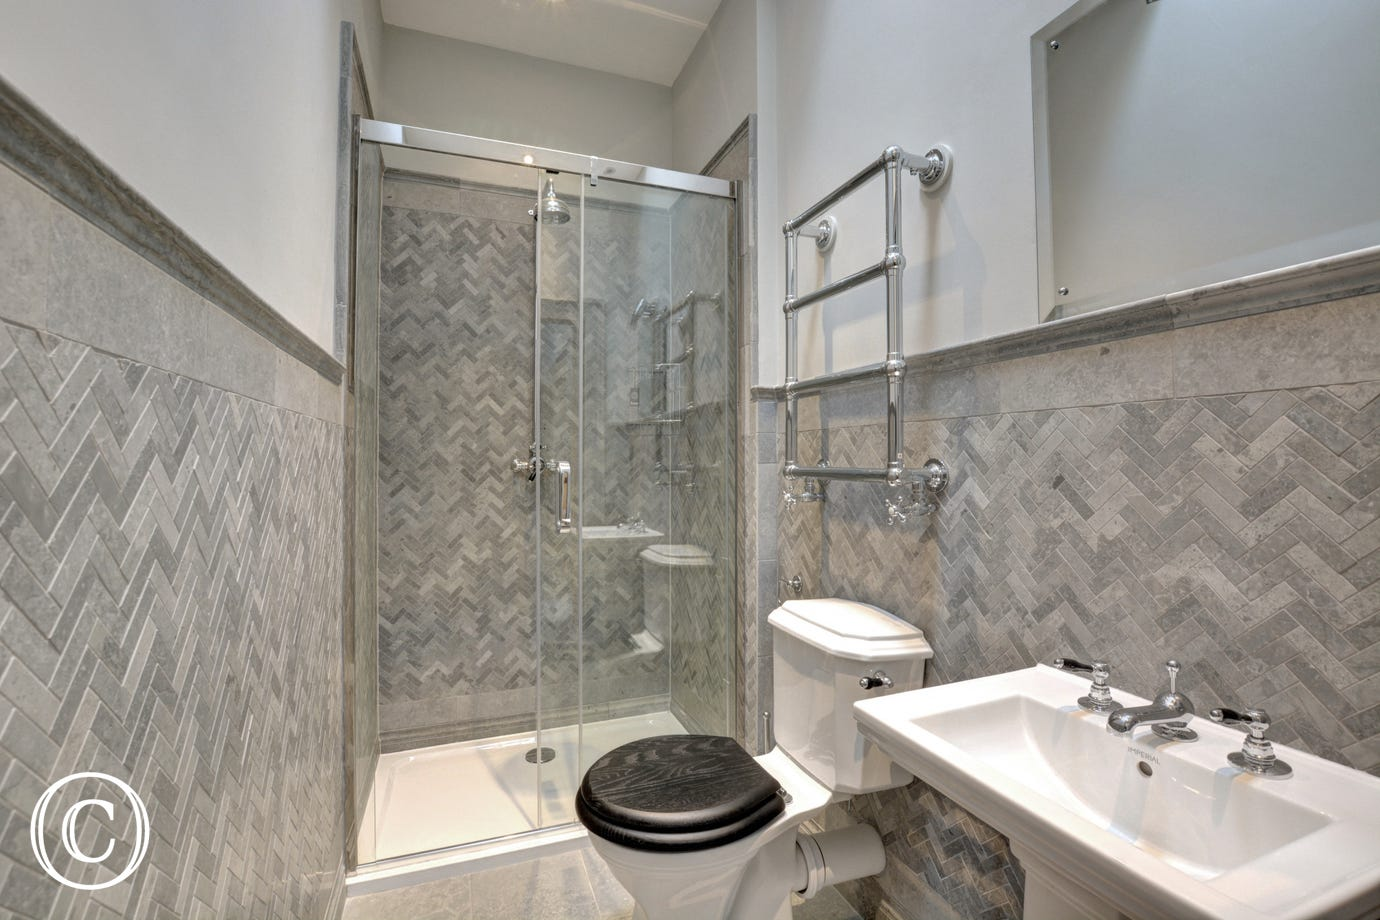 Shower, washbasin and wc